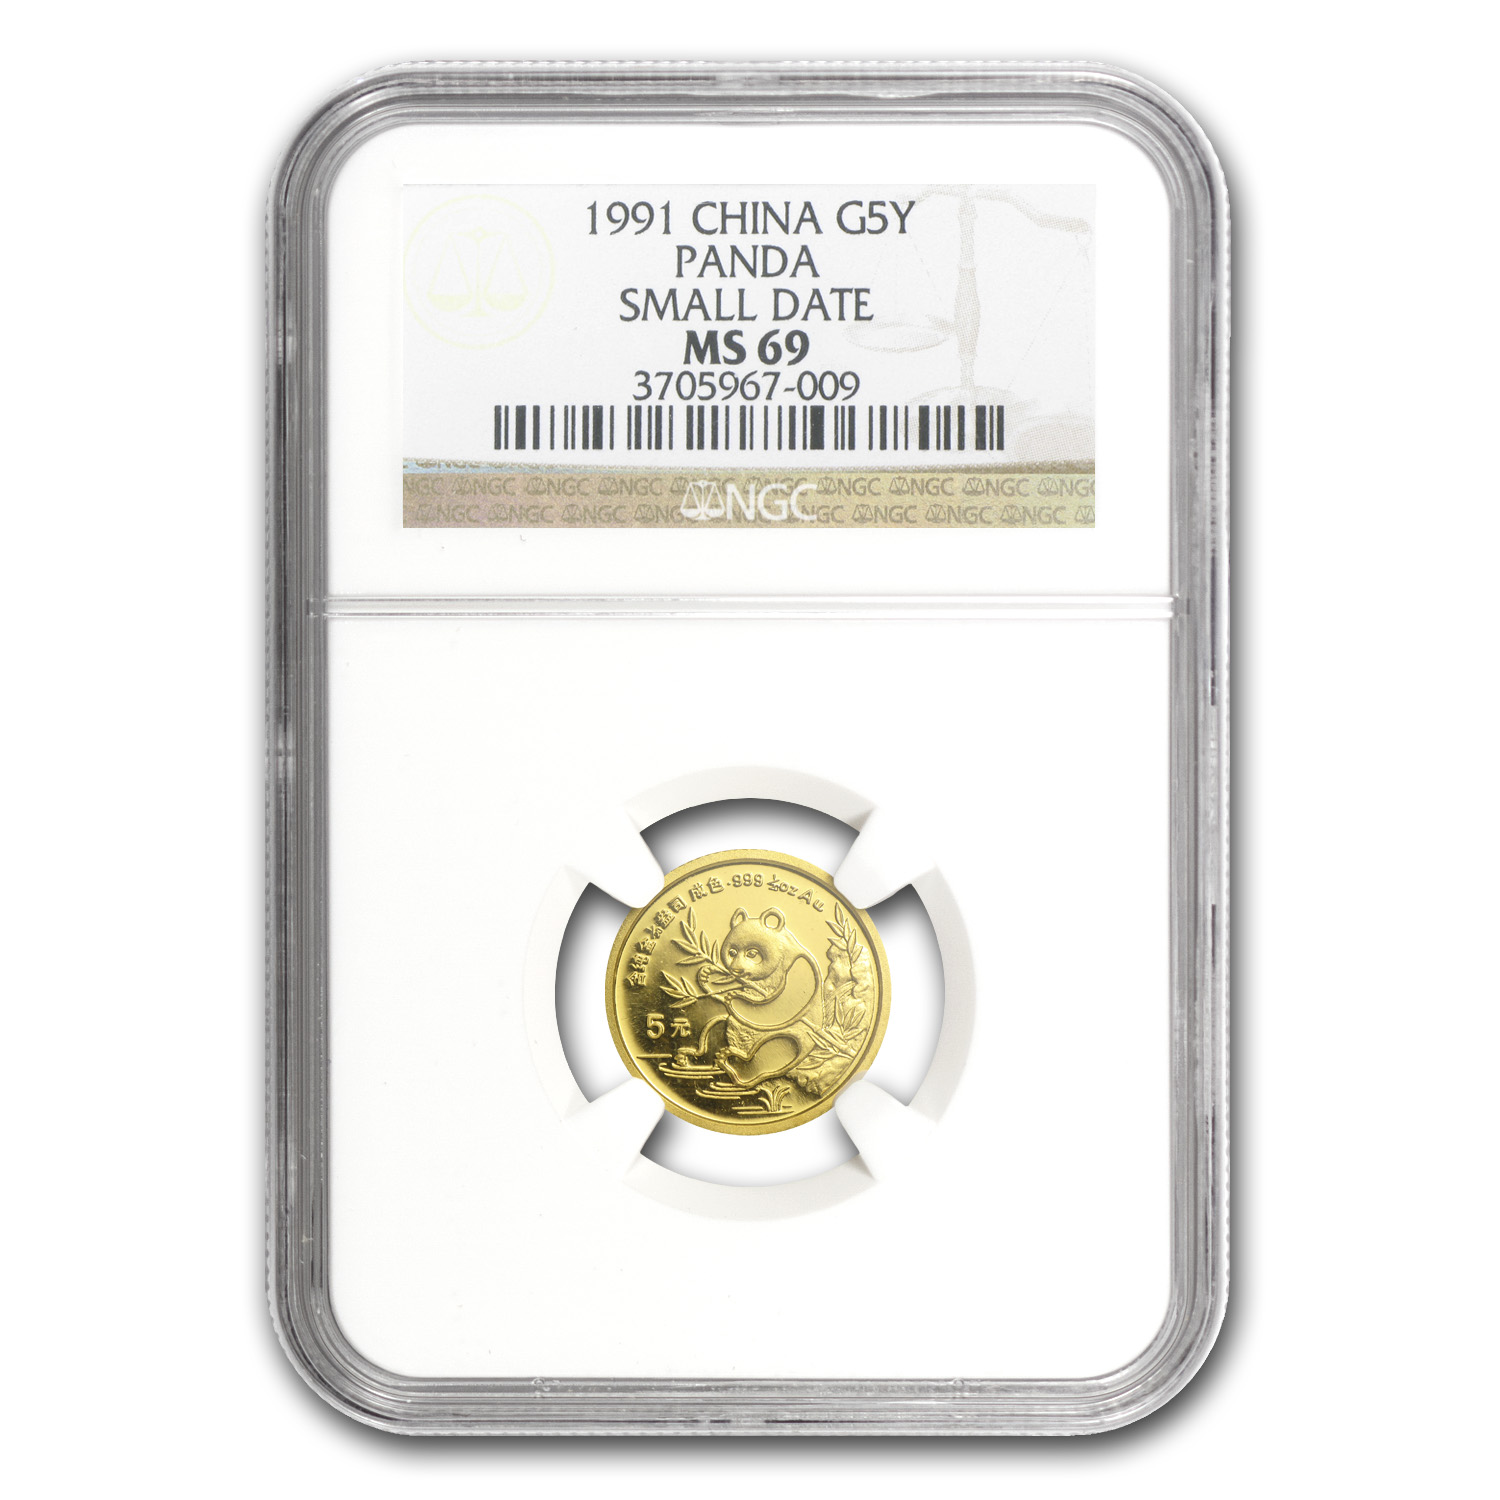 1991 China 1/20 oz Gold Panda Small Date MS-69 NGC